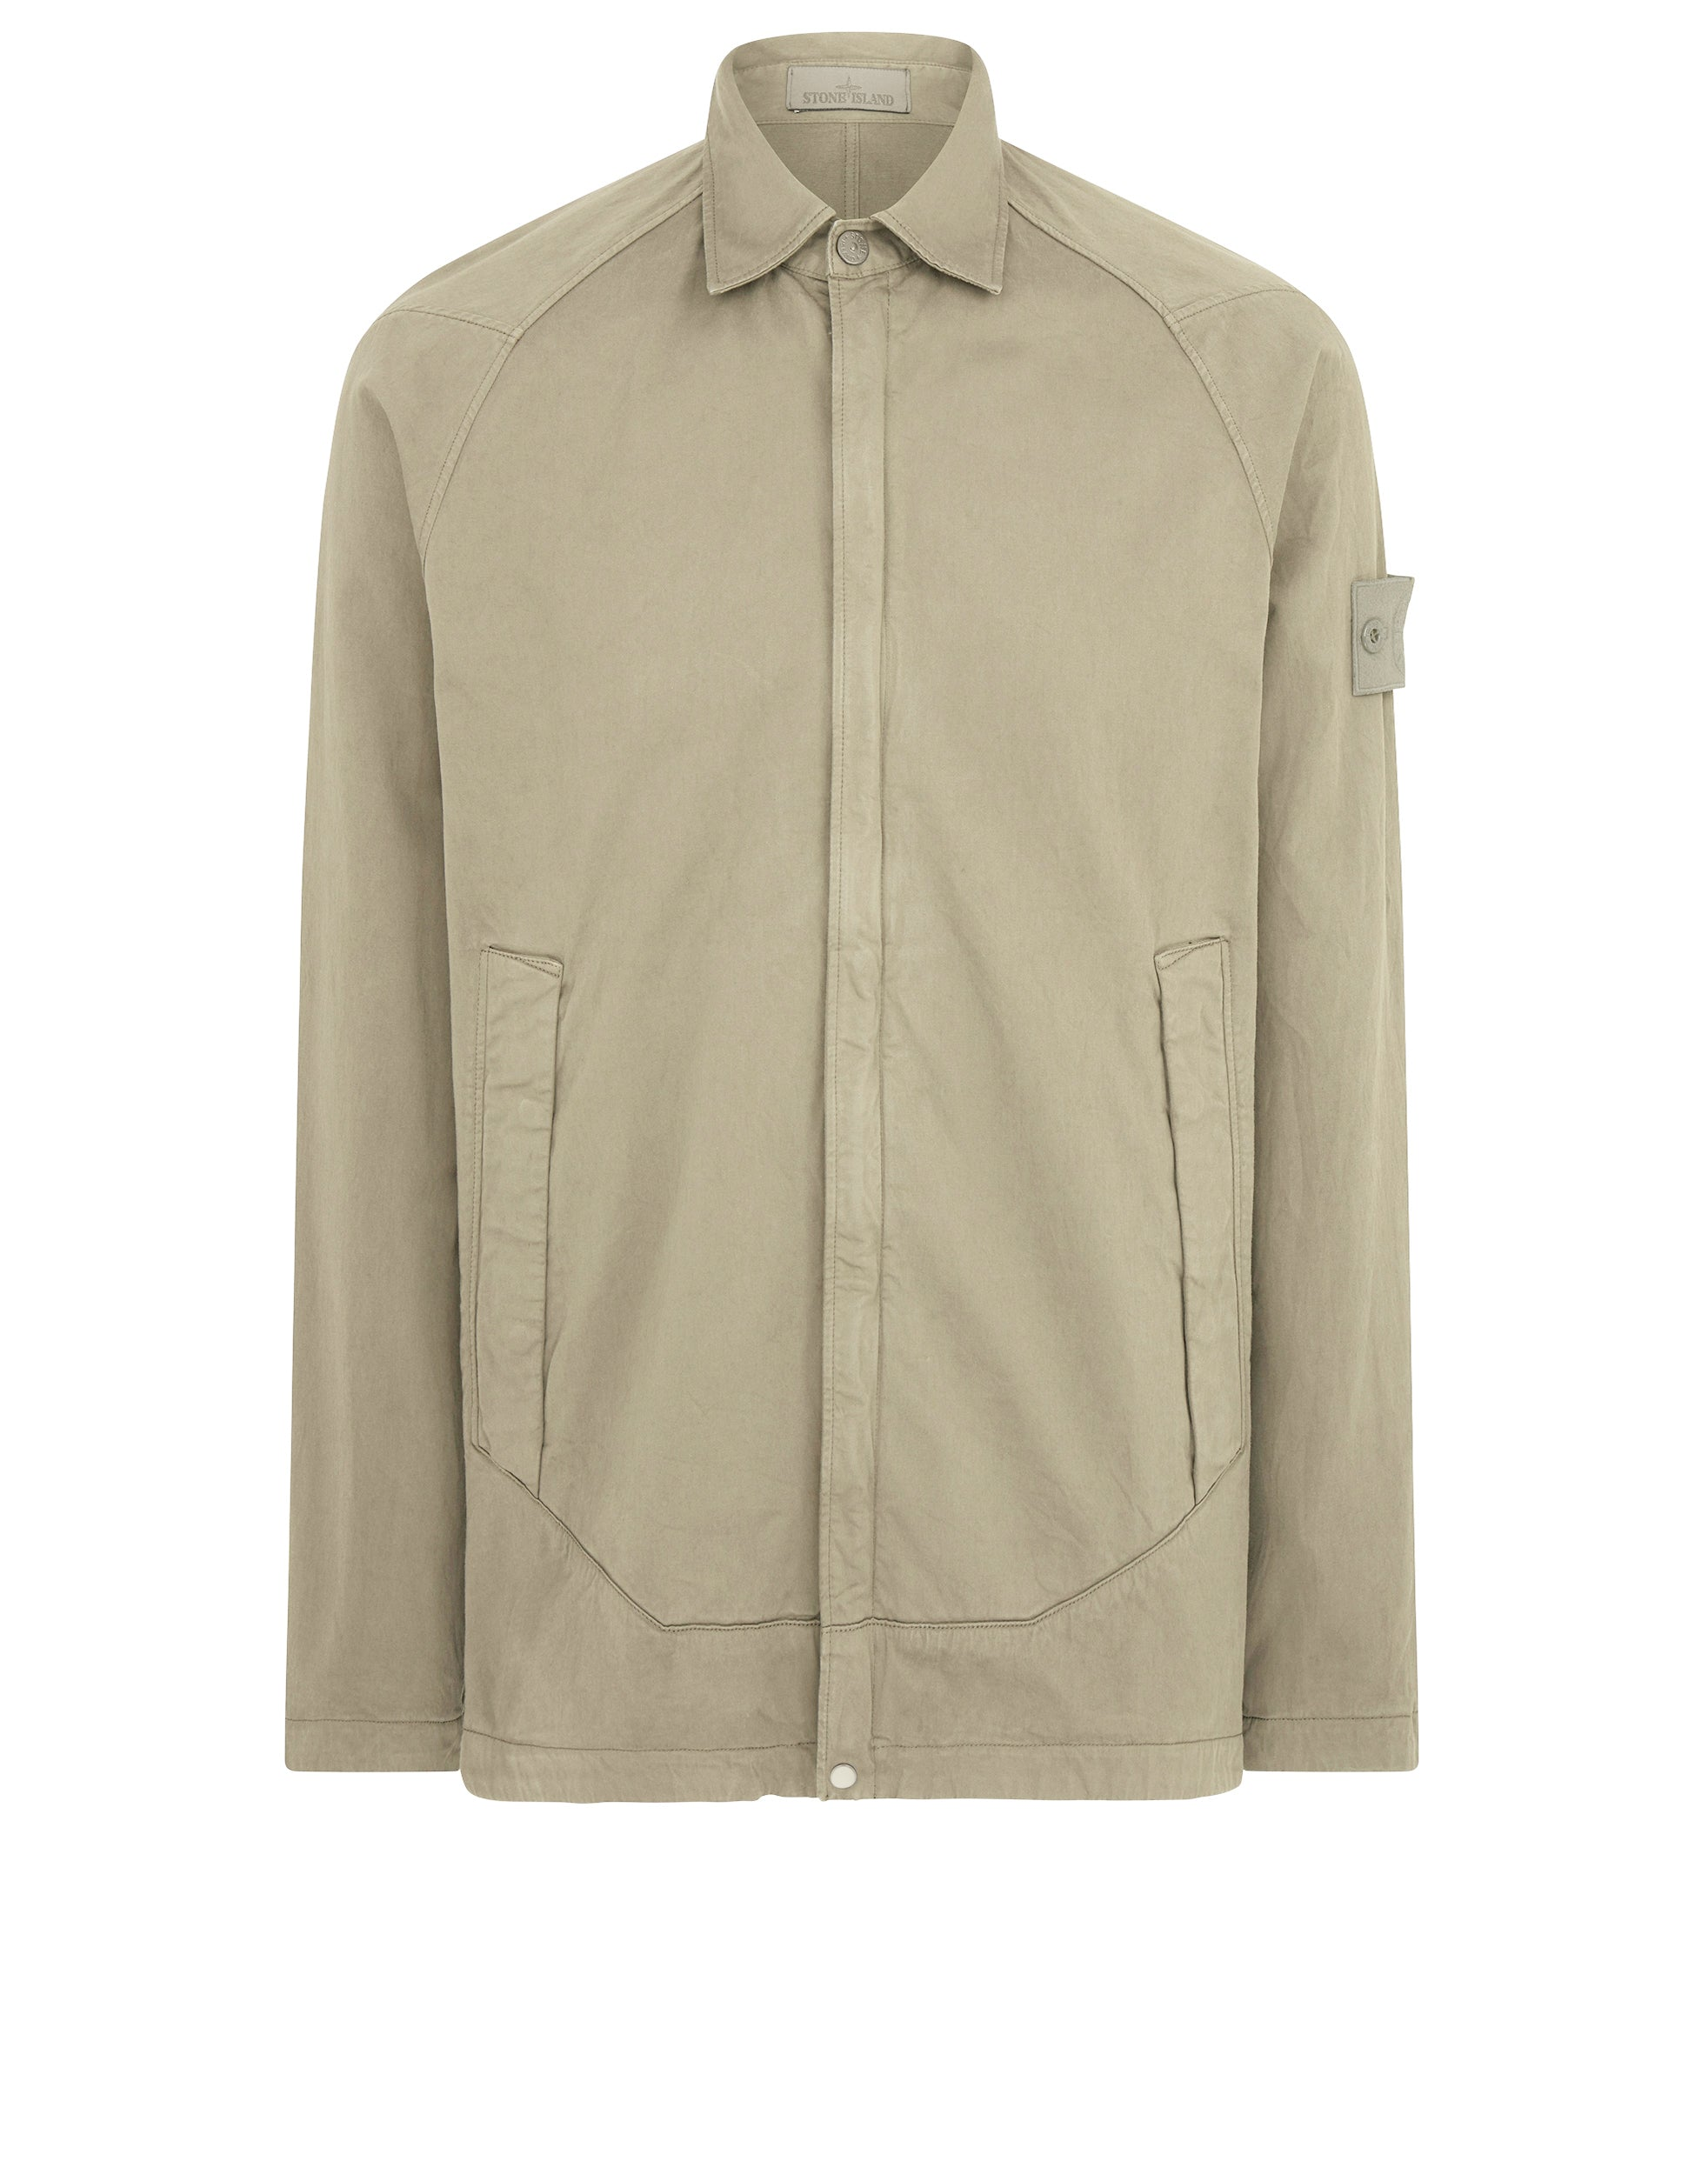 116F4 Overshirt in Beige